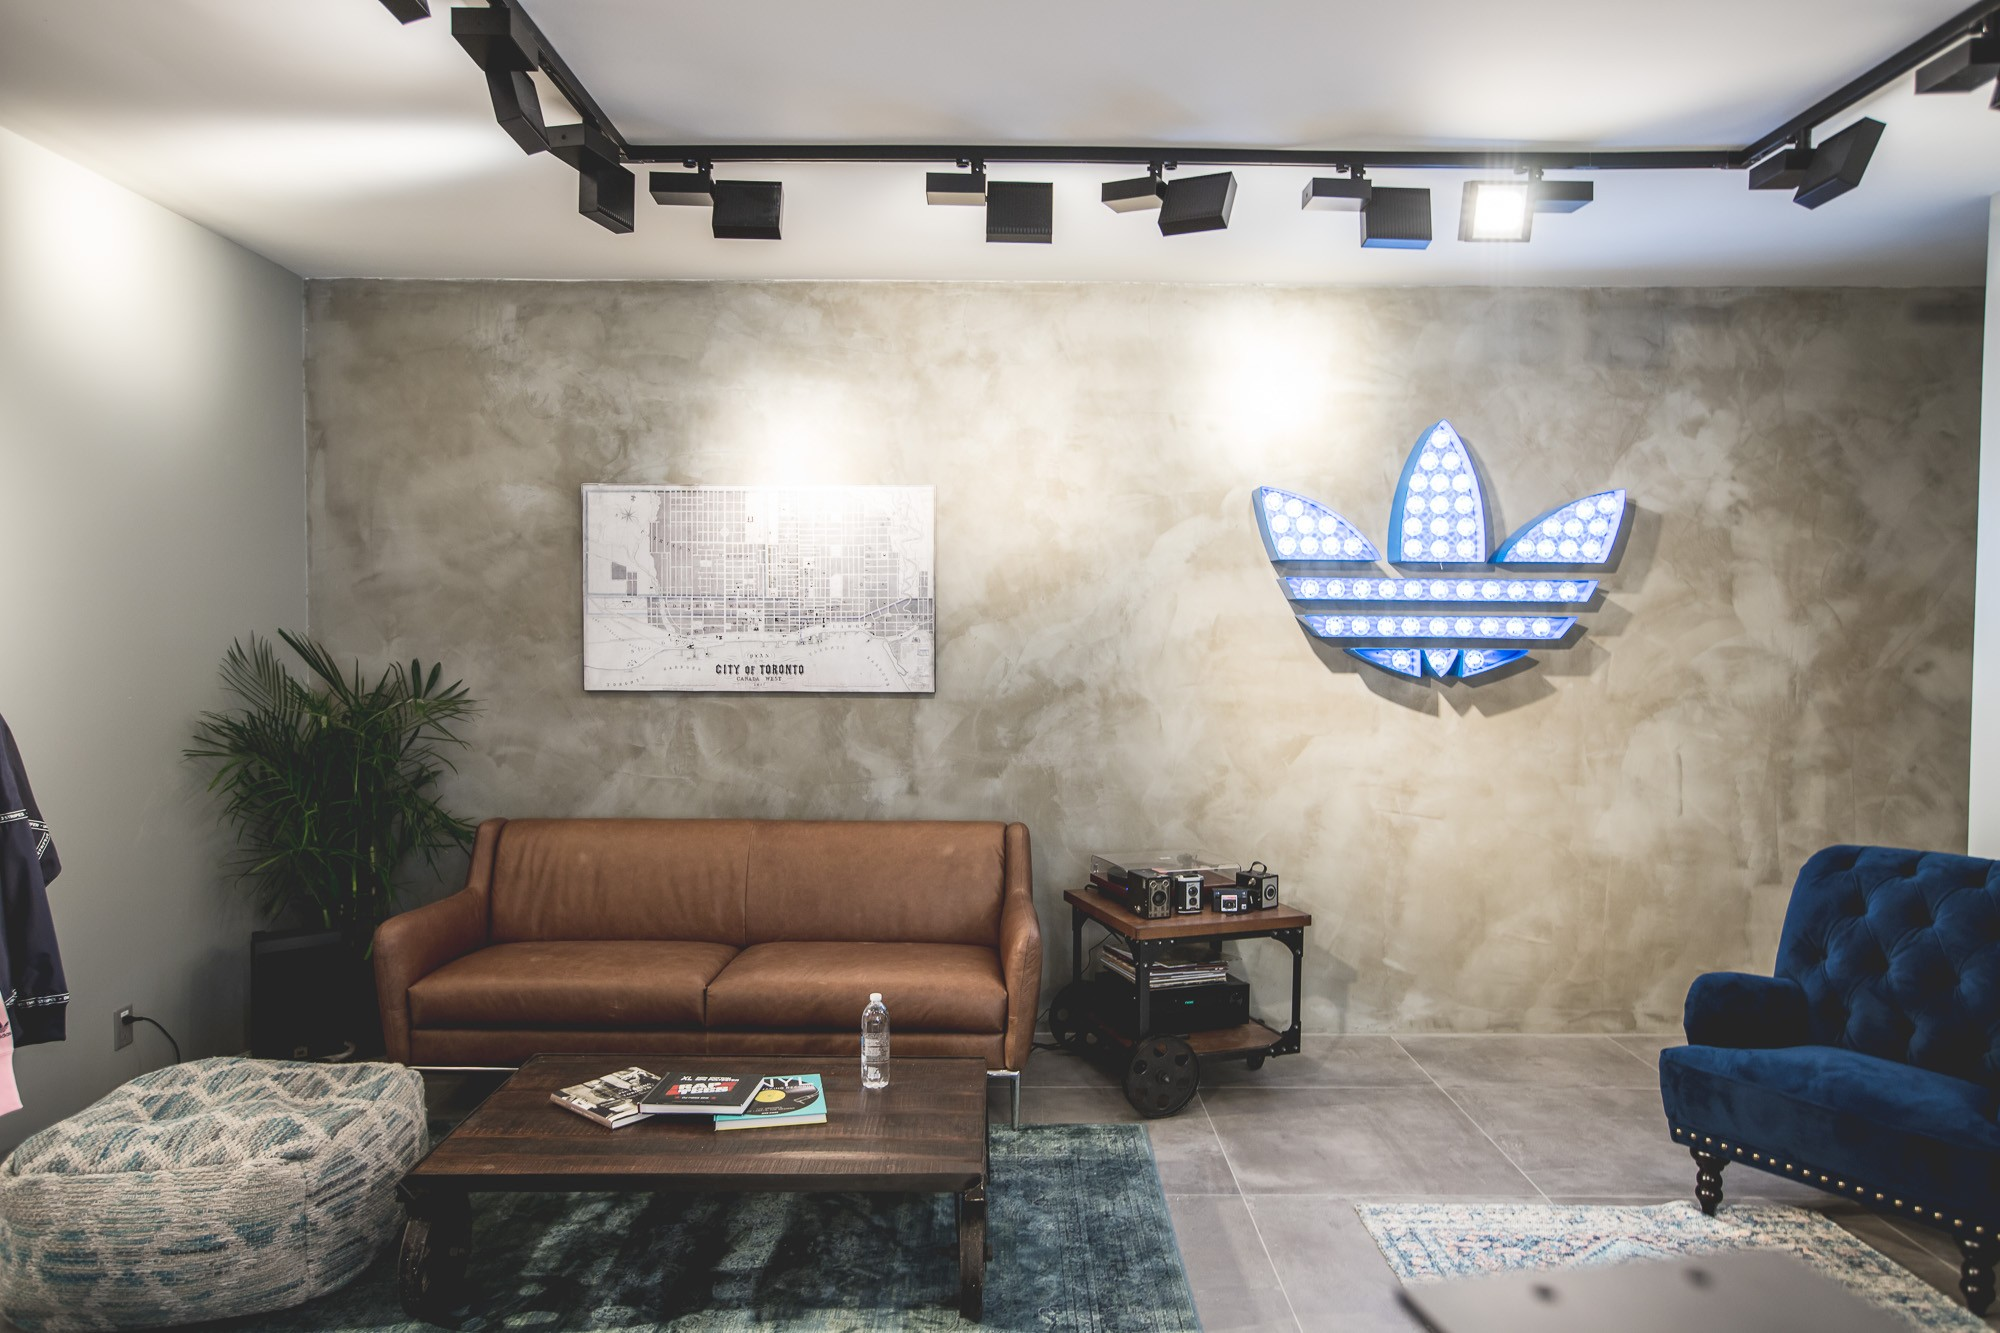 Dh adidasstore queenwest 20170809 12